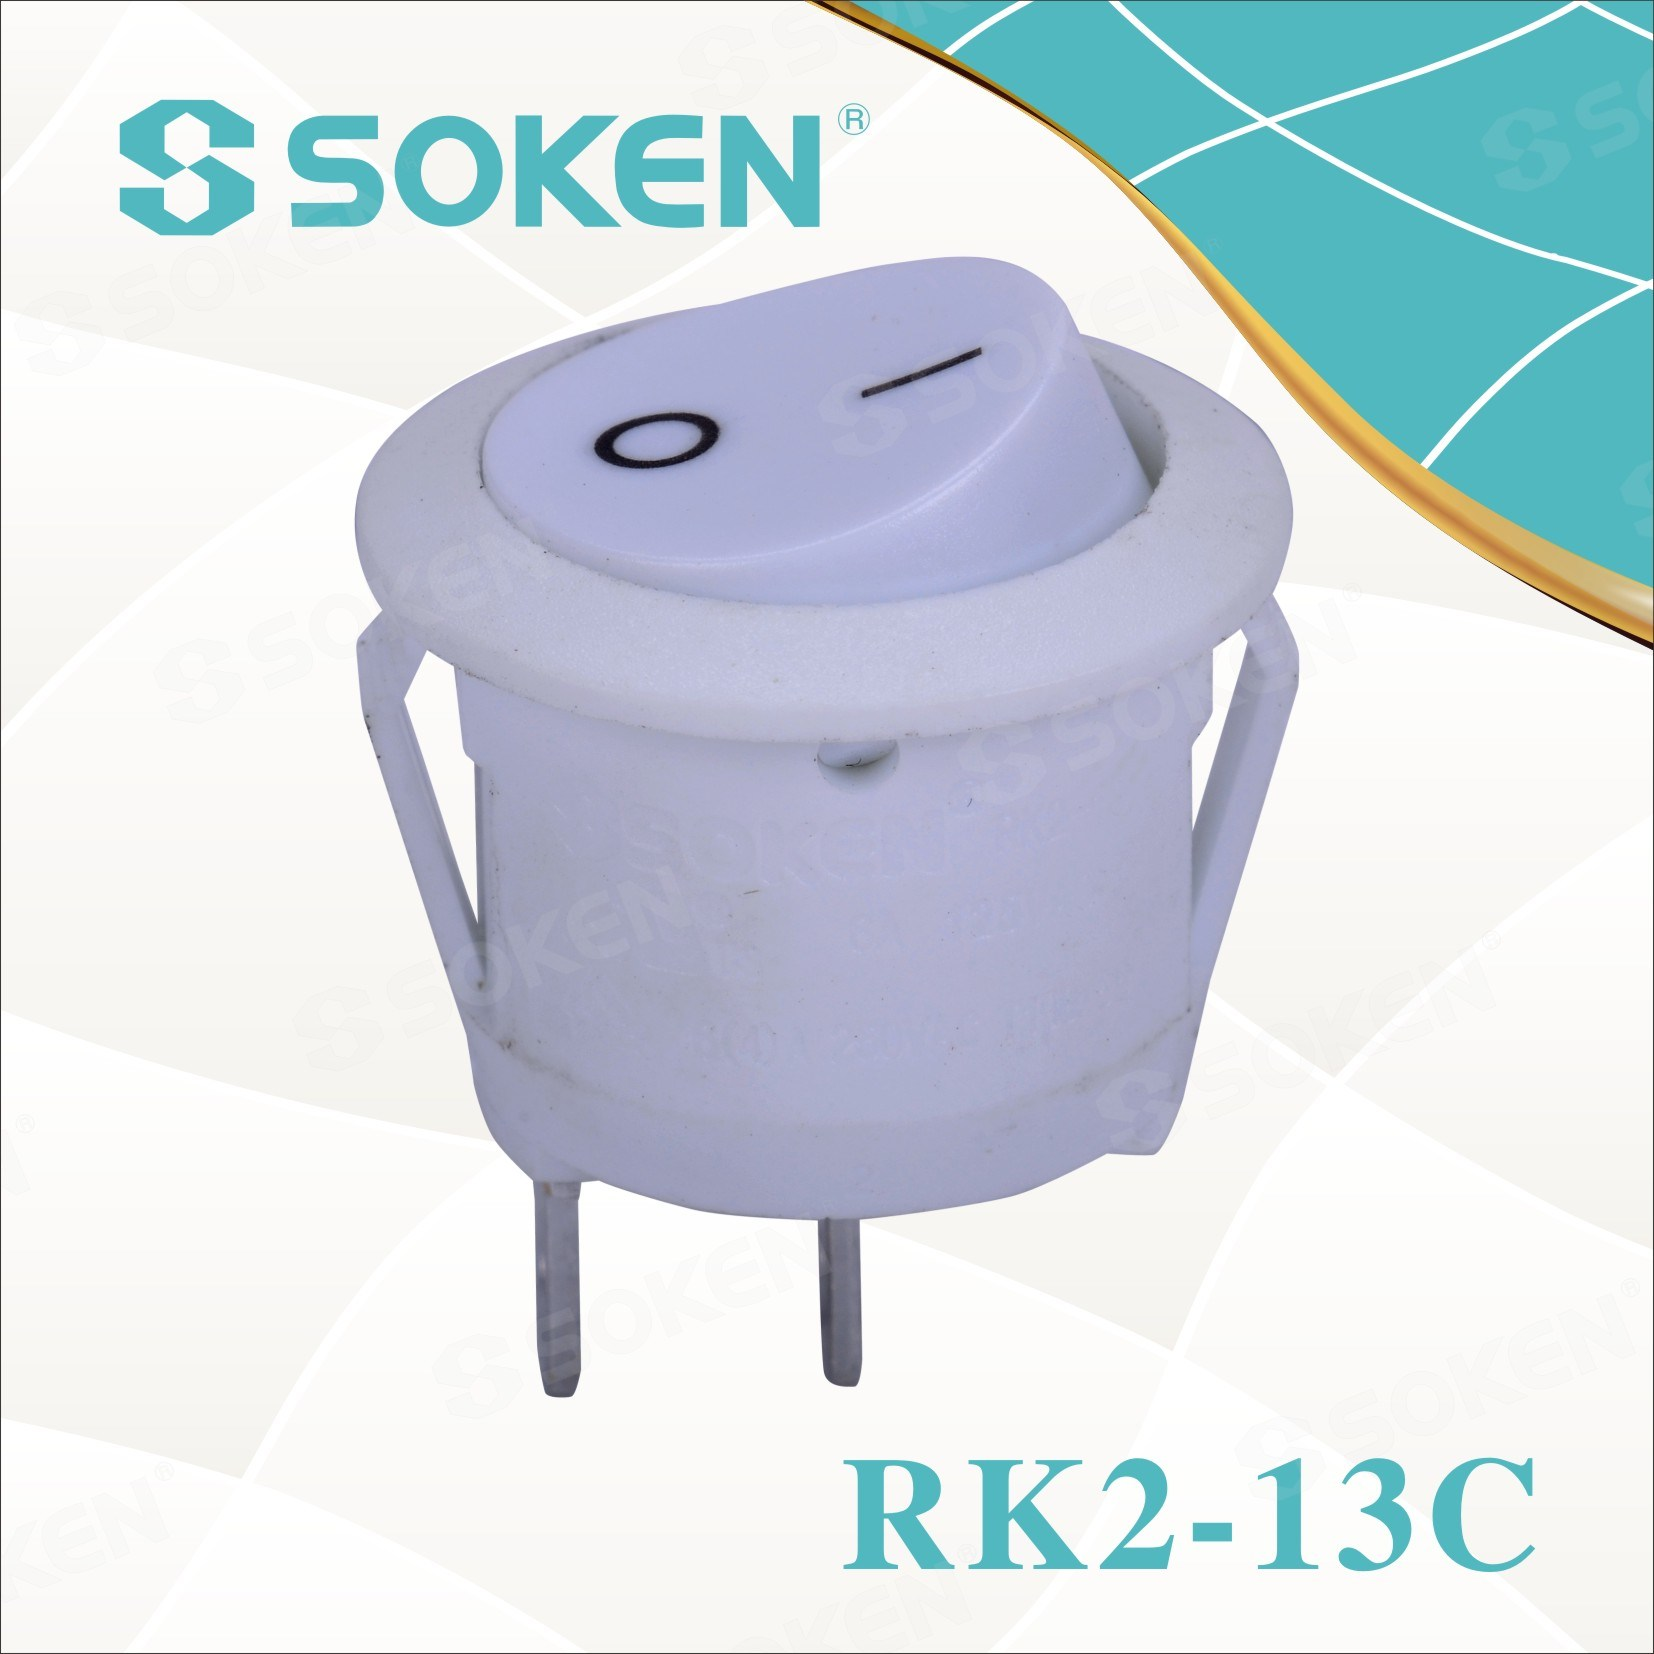 Soken Rk2-13c Round Rocker Switch